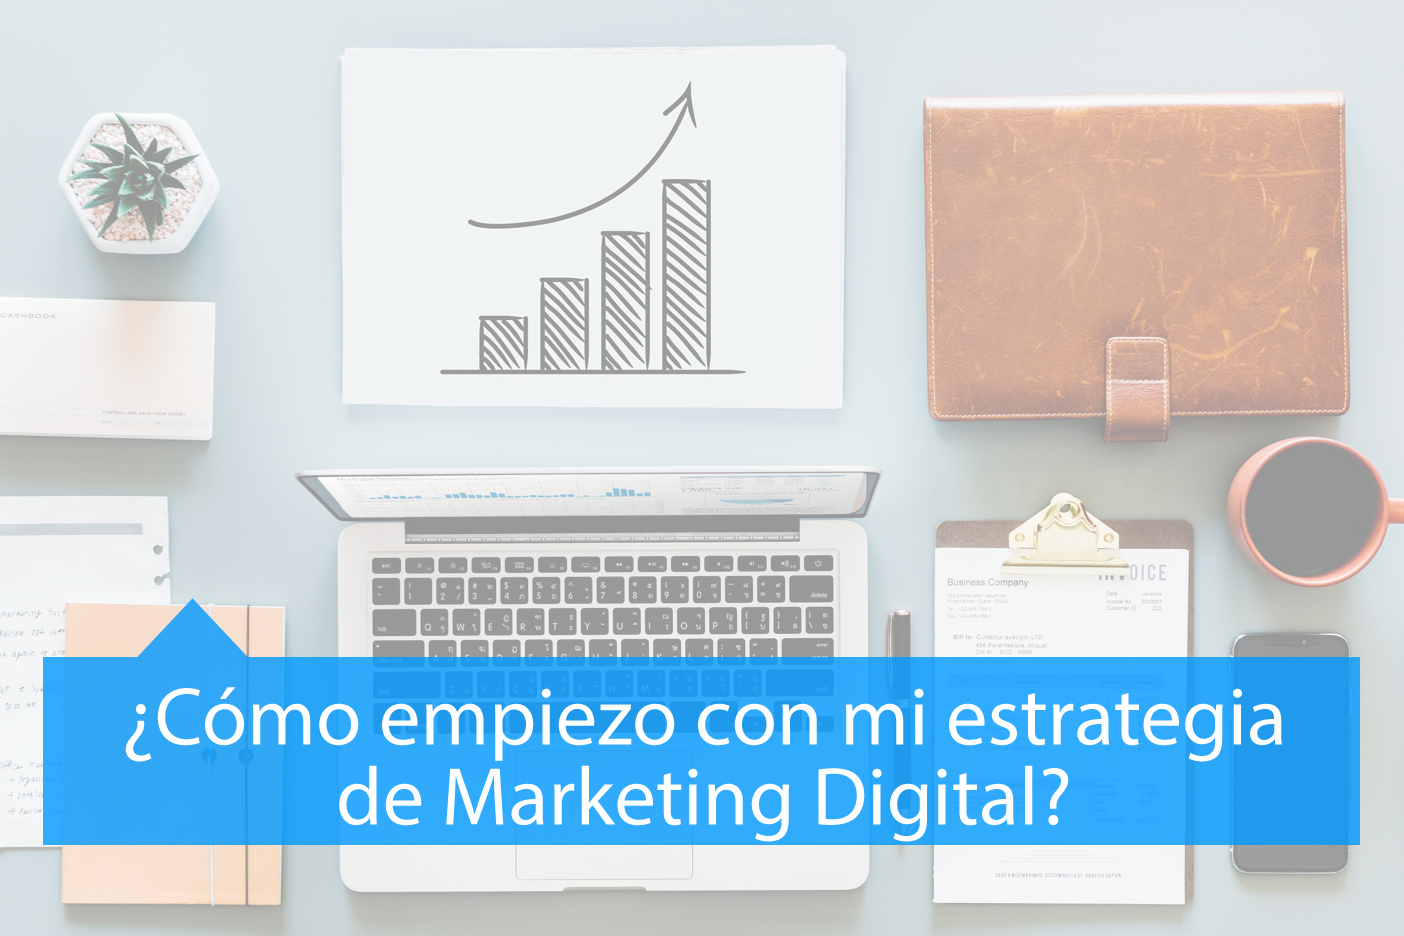 cómo empiezo con mi estrategia de marketing digital